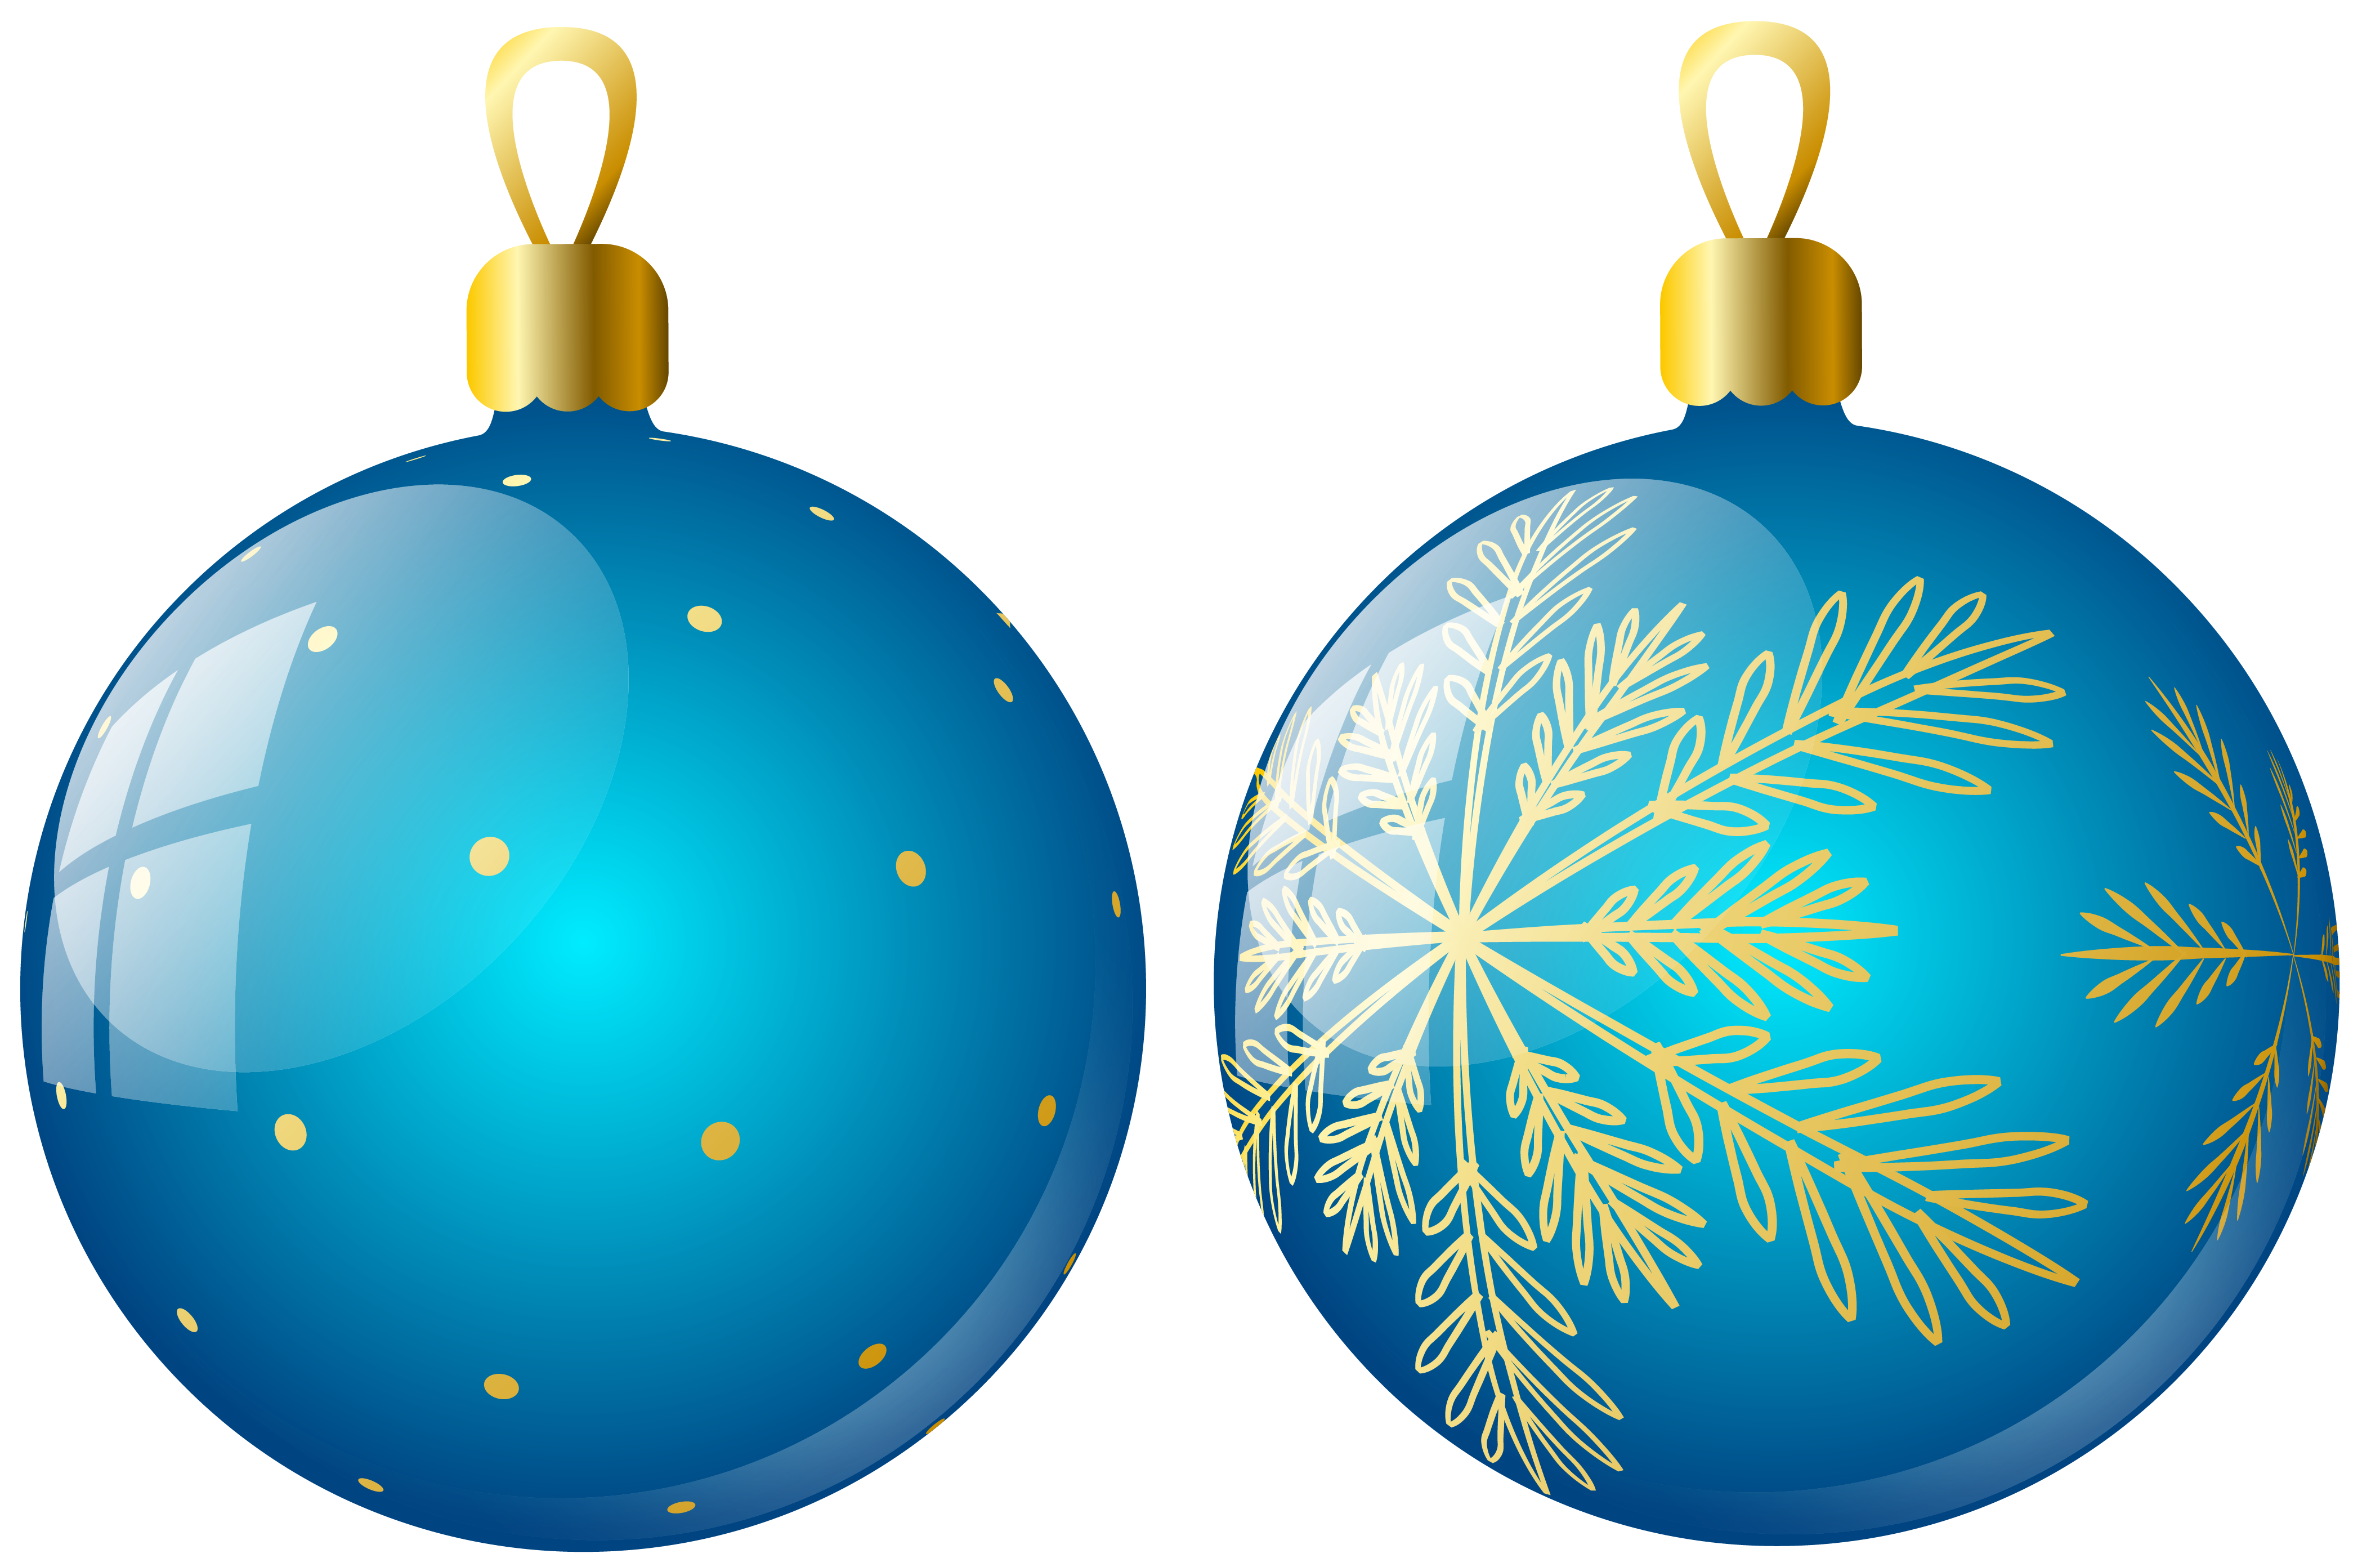 Christmas bulbs clipart clip free library Transparent Two Blue Christmas Balls Ornaments Clipart | Gallery ... clip free library